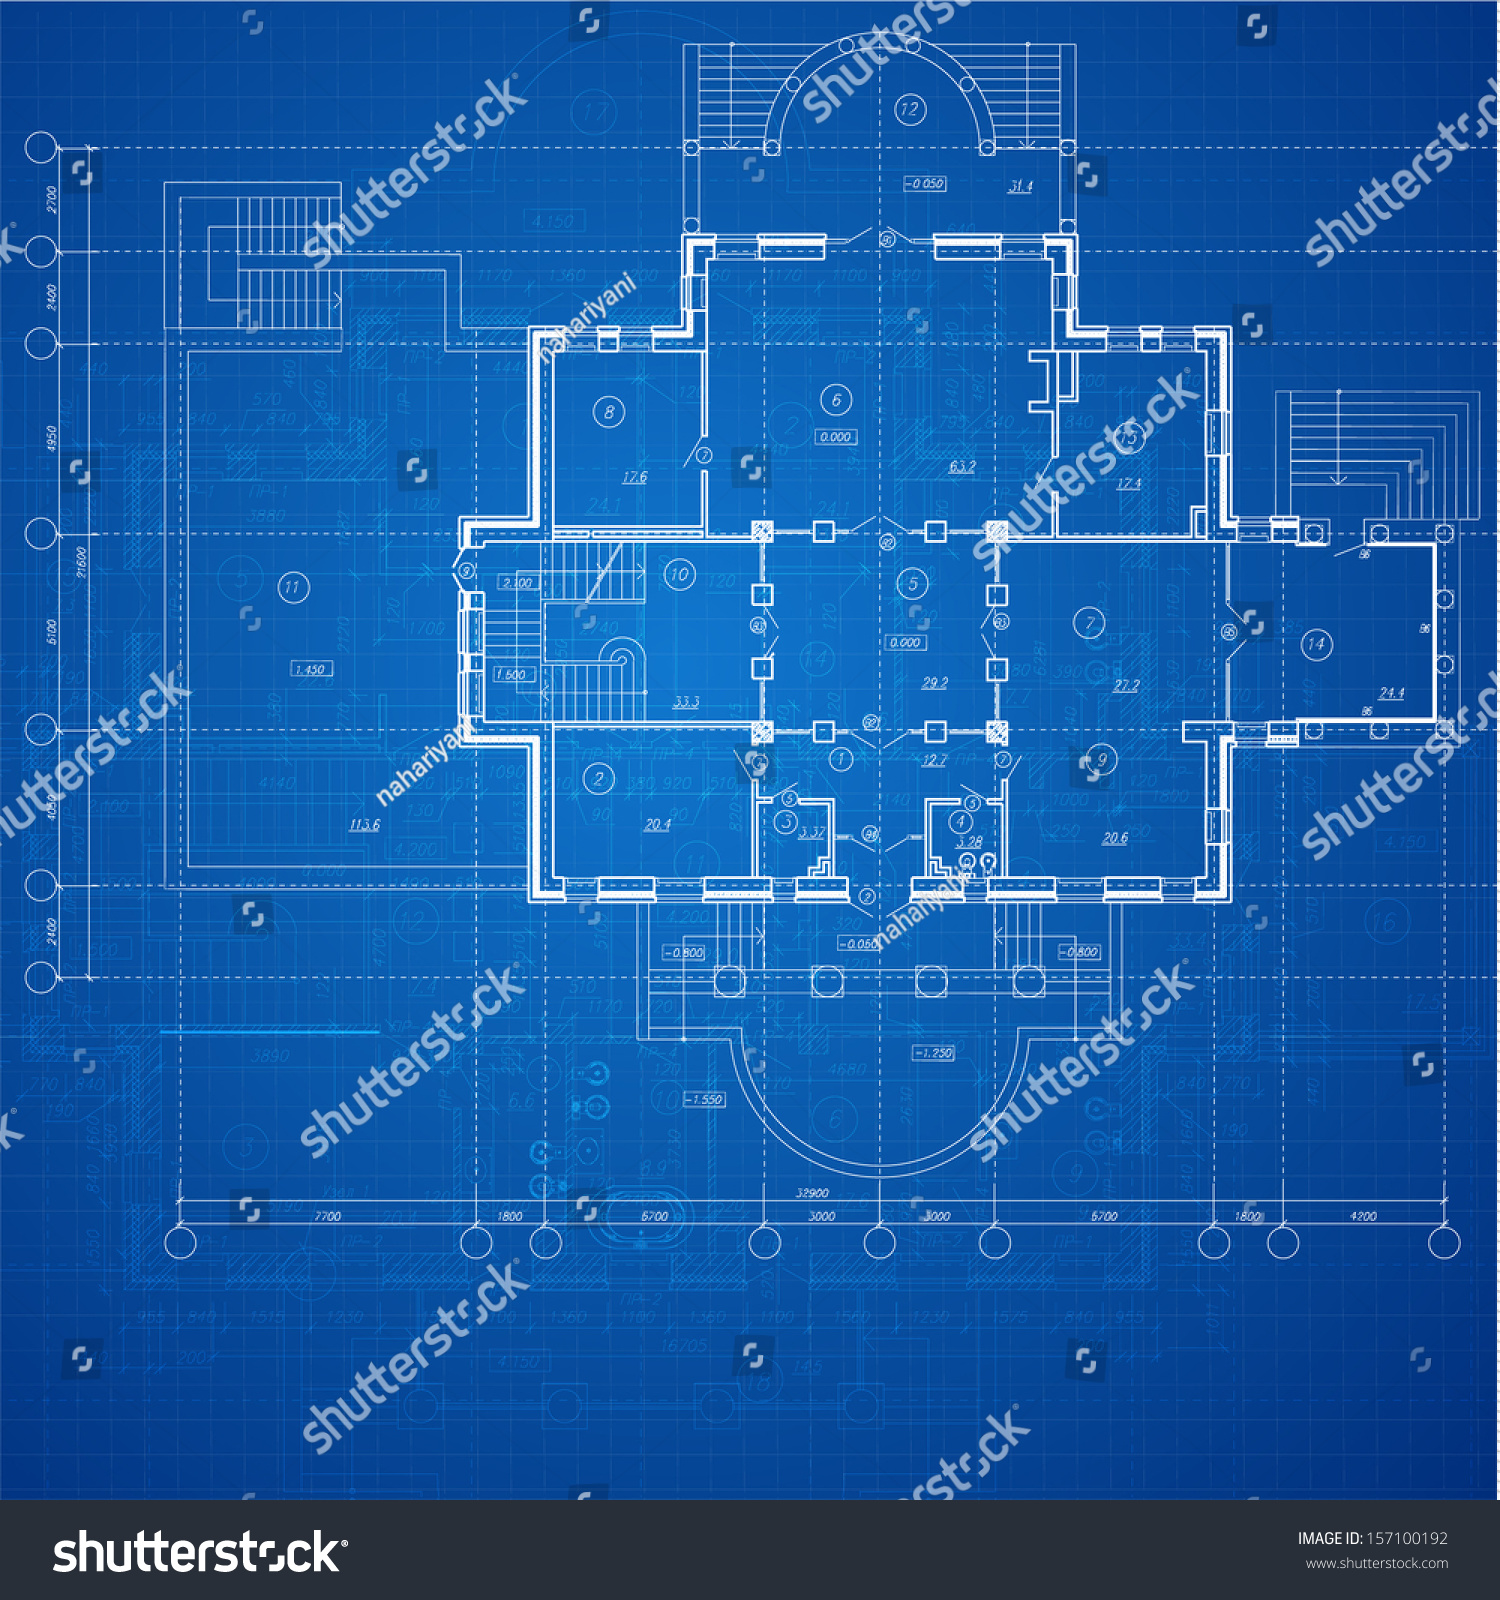 Urban blueprint vector architectural background part stock for Architecture design blueprint